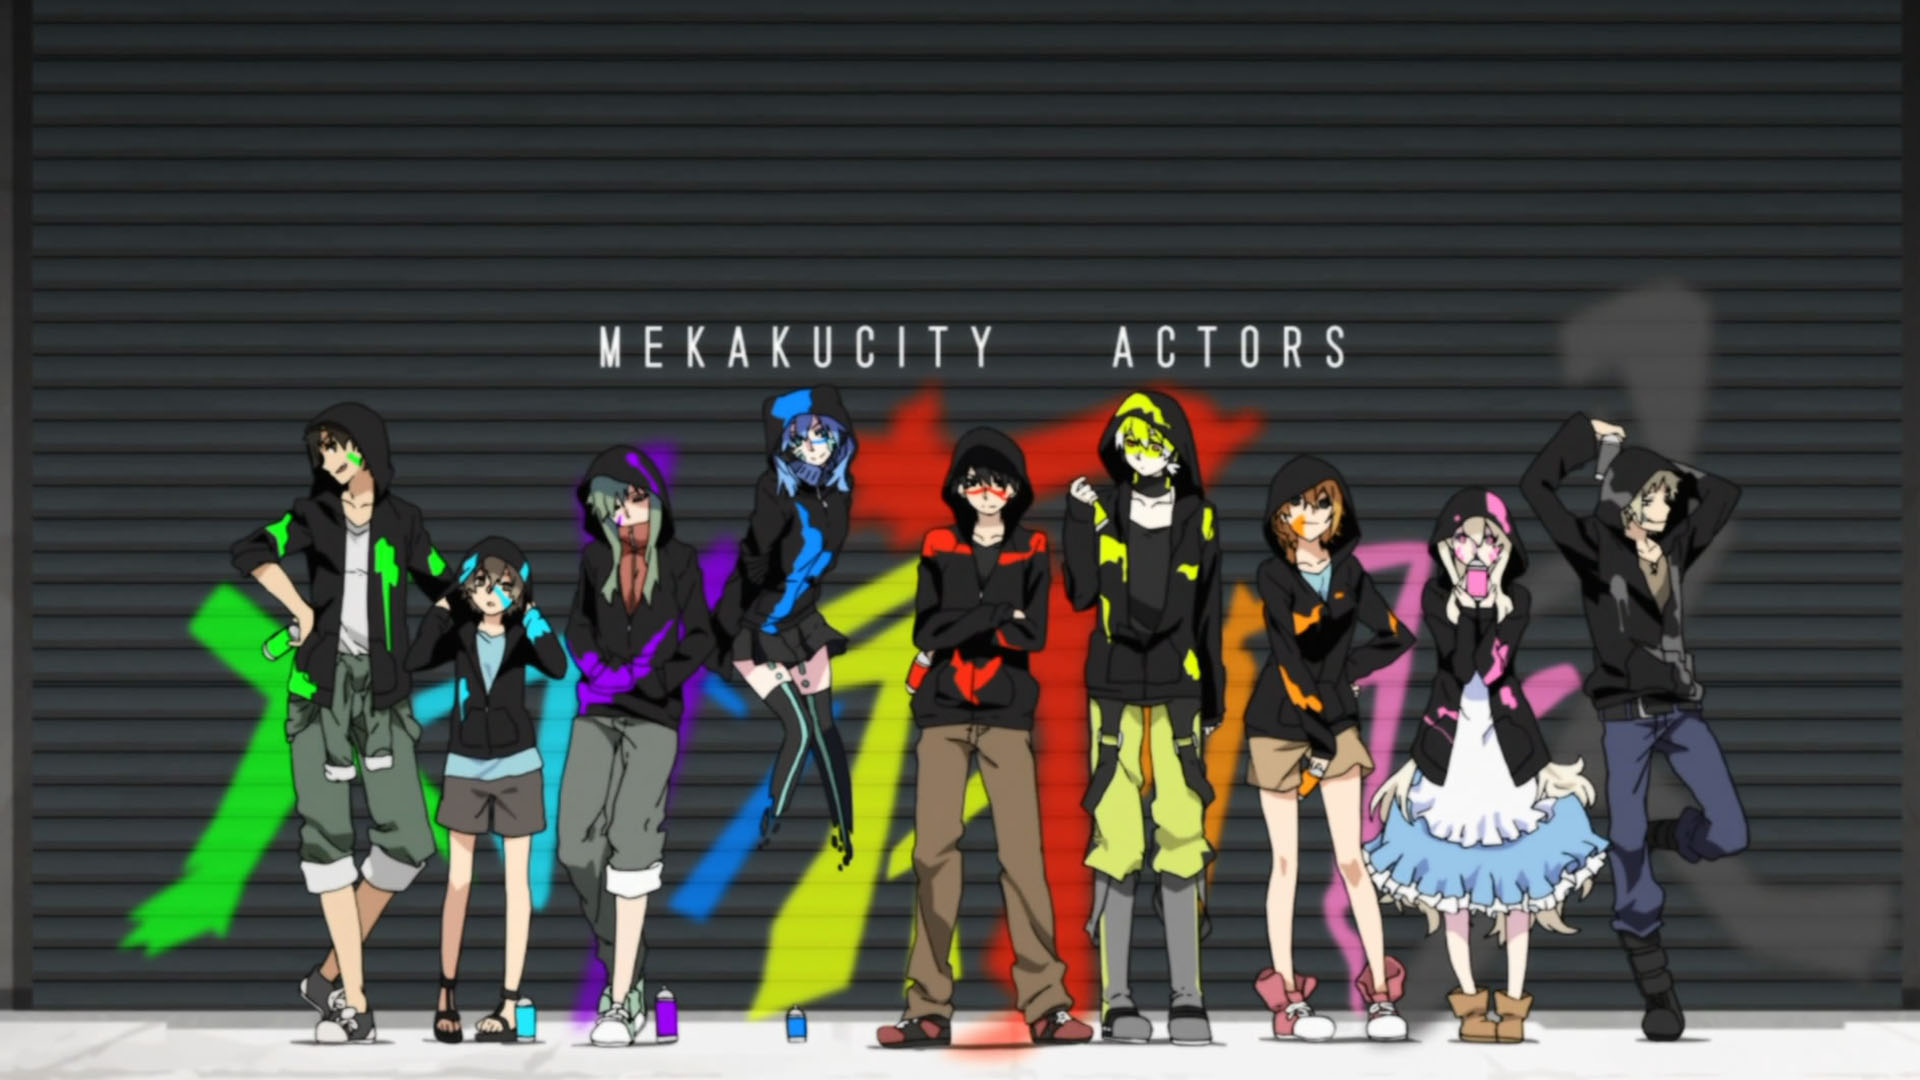 Mekakucity Actors